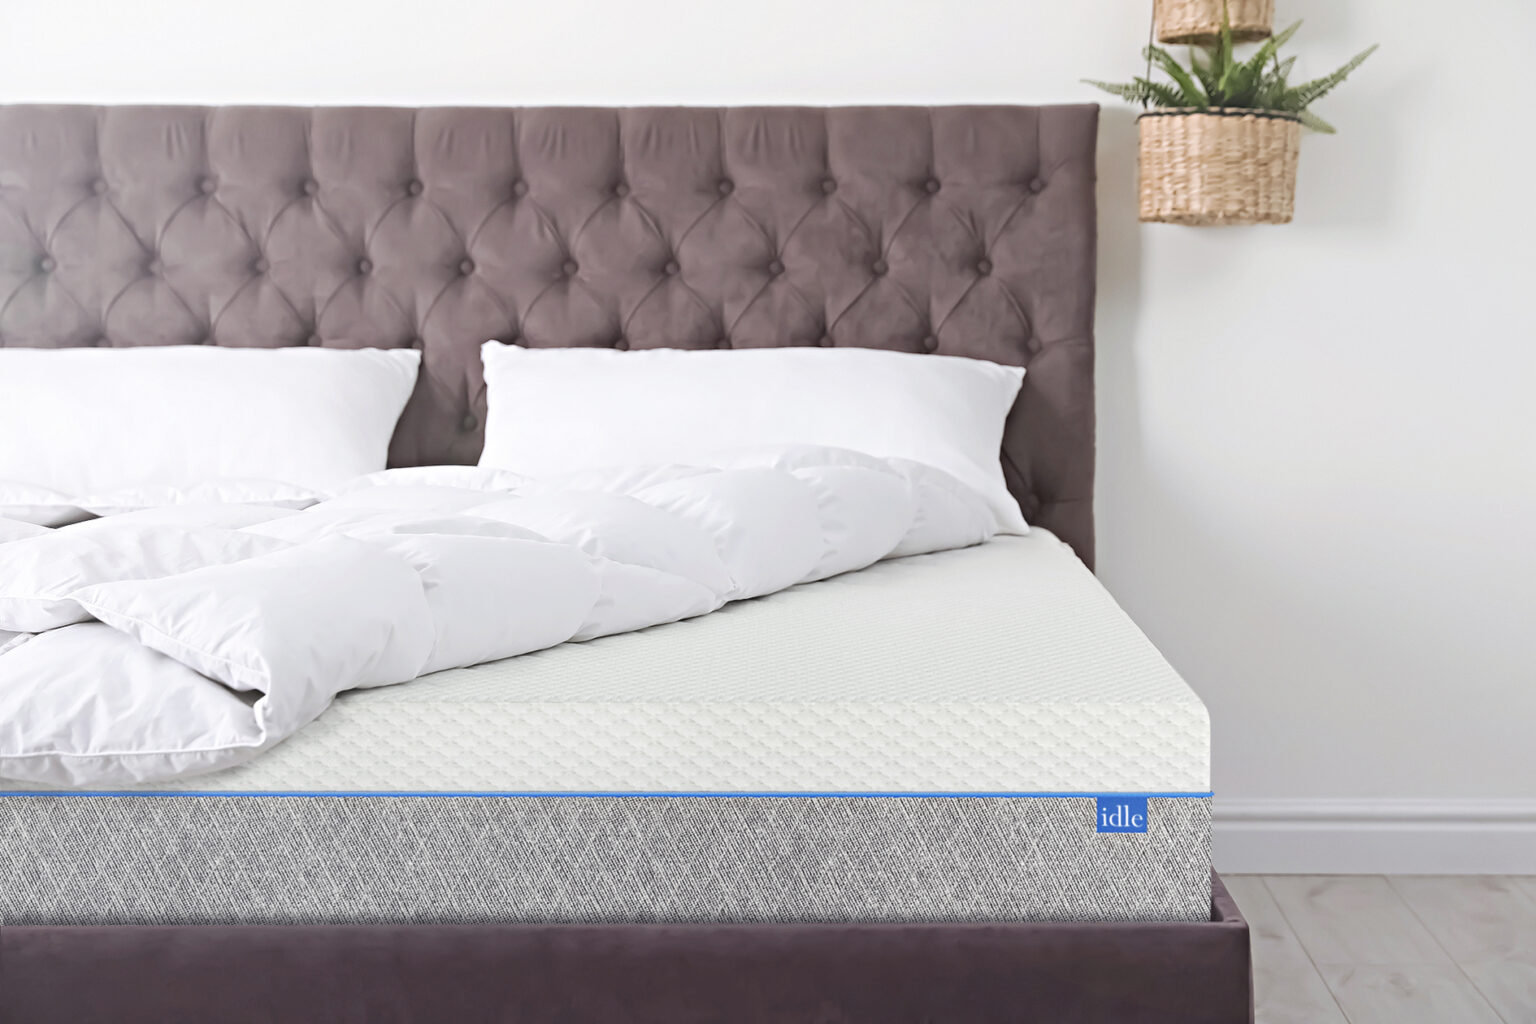 Idle Sleep New Memory Foam Mattresses Come with 2 FREE Pillows